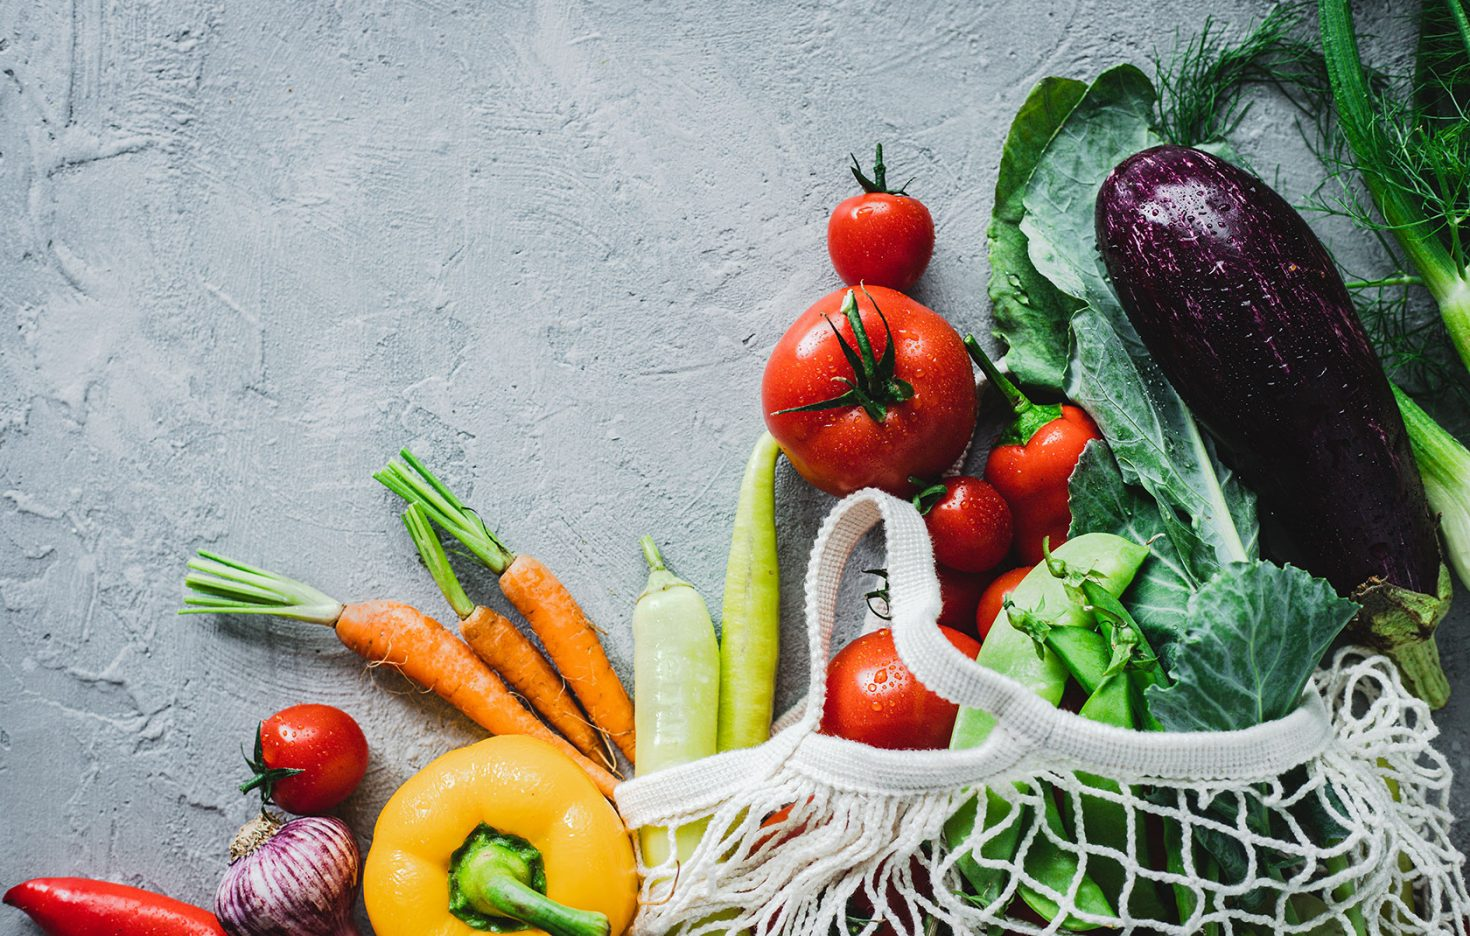 cib-how-sustainable-finance-is-tackling-food-waste